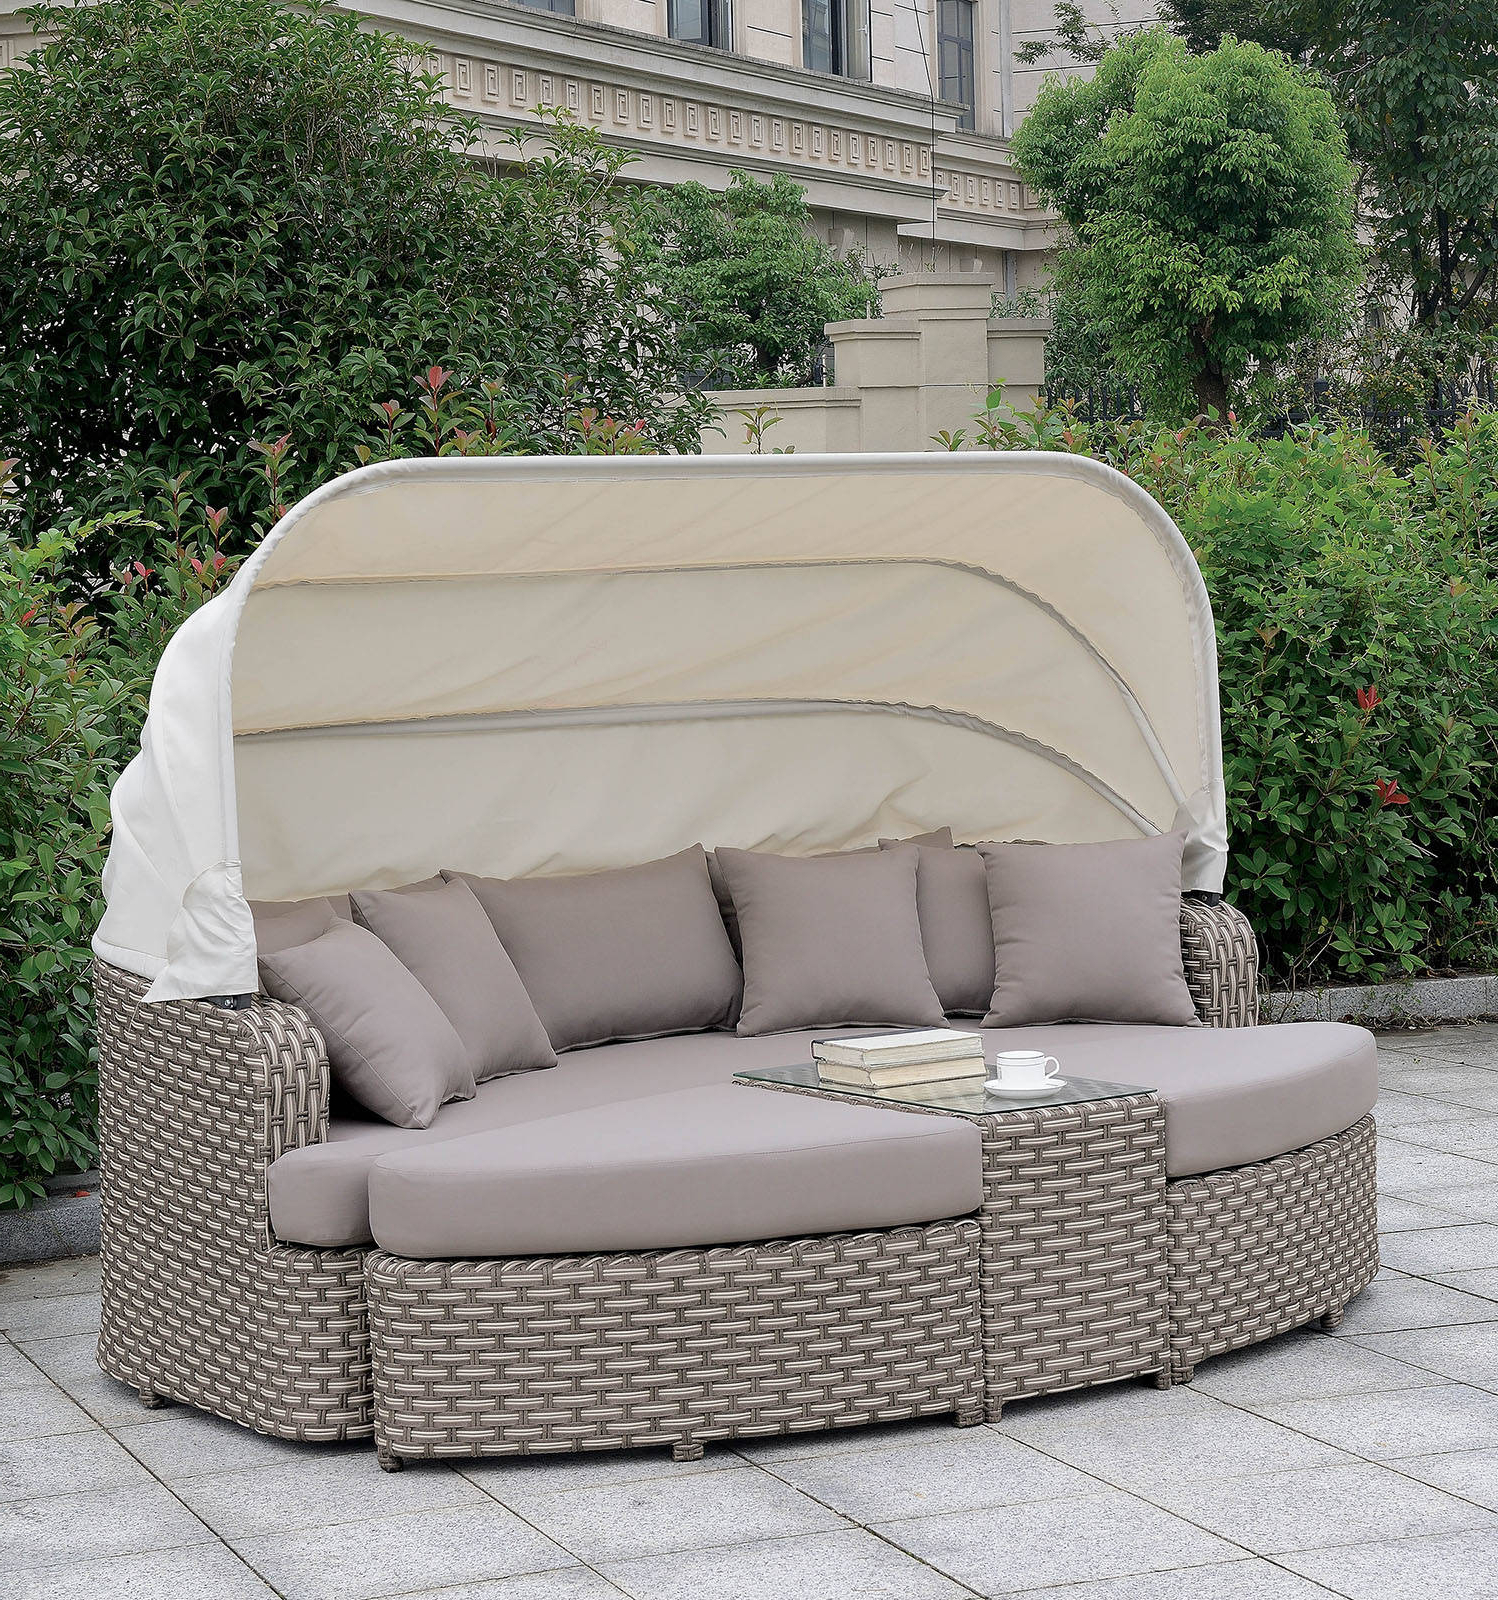 Favorite Furniture: Cool Patio Daybed With Alluring Cushions For Regarding Dowling Patio Daybeds With Cushion (View 19 of 25)